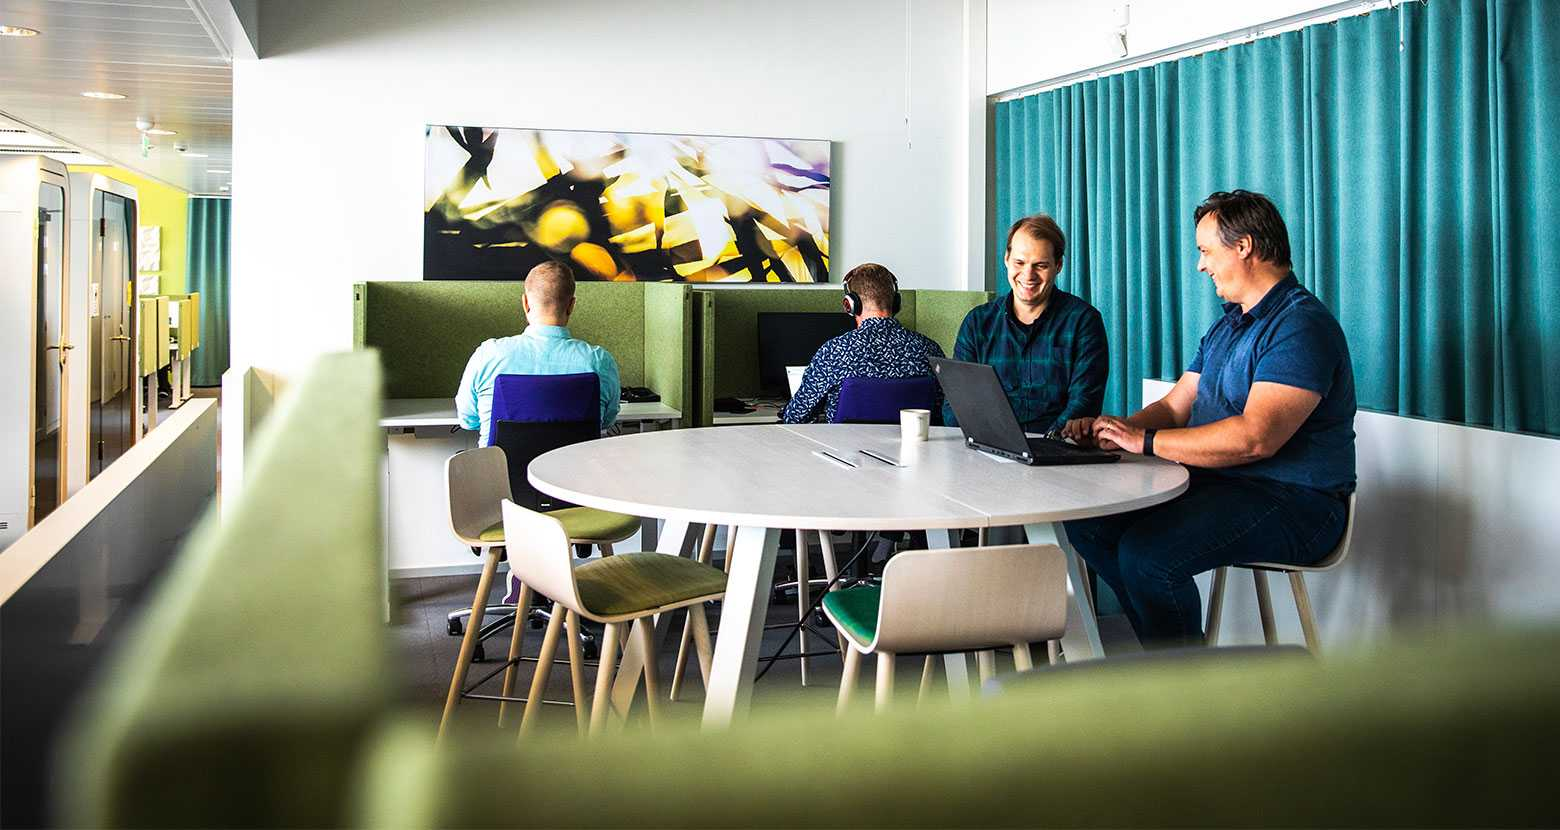 Martela's Sola chairs, Frankie table and Face screens at Enfo's office in Espoo, Finland